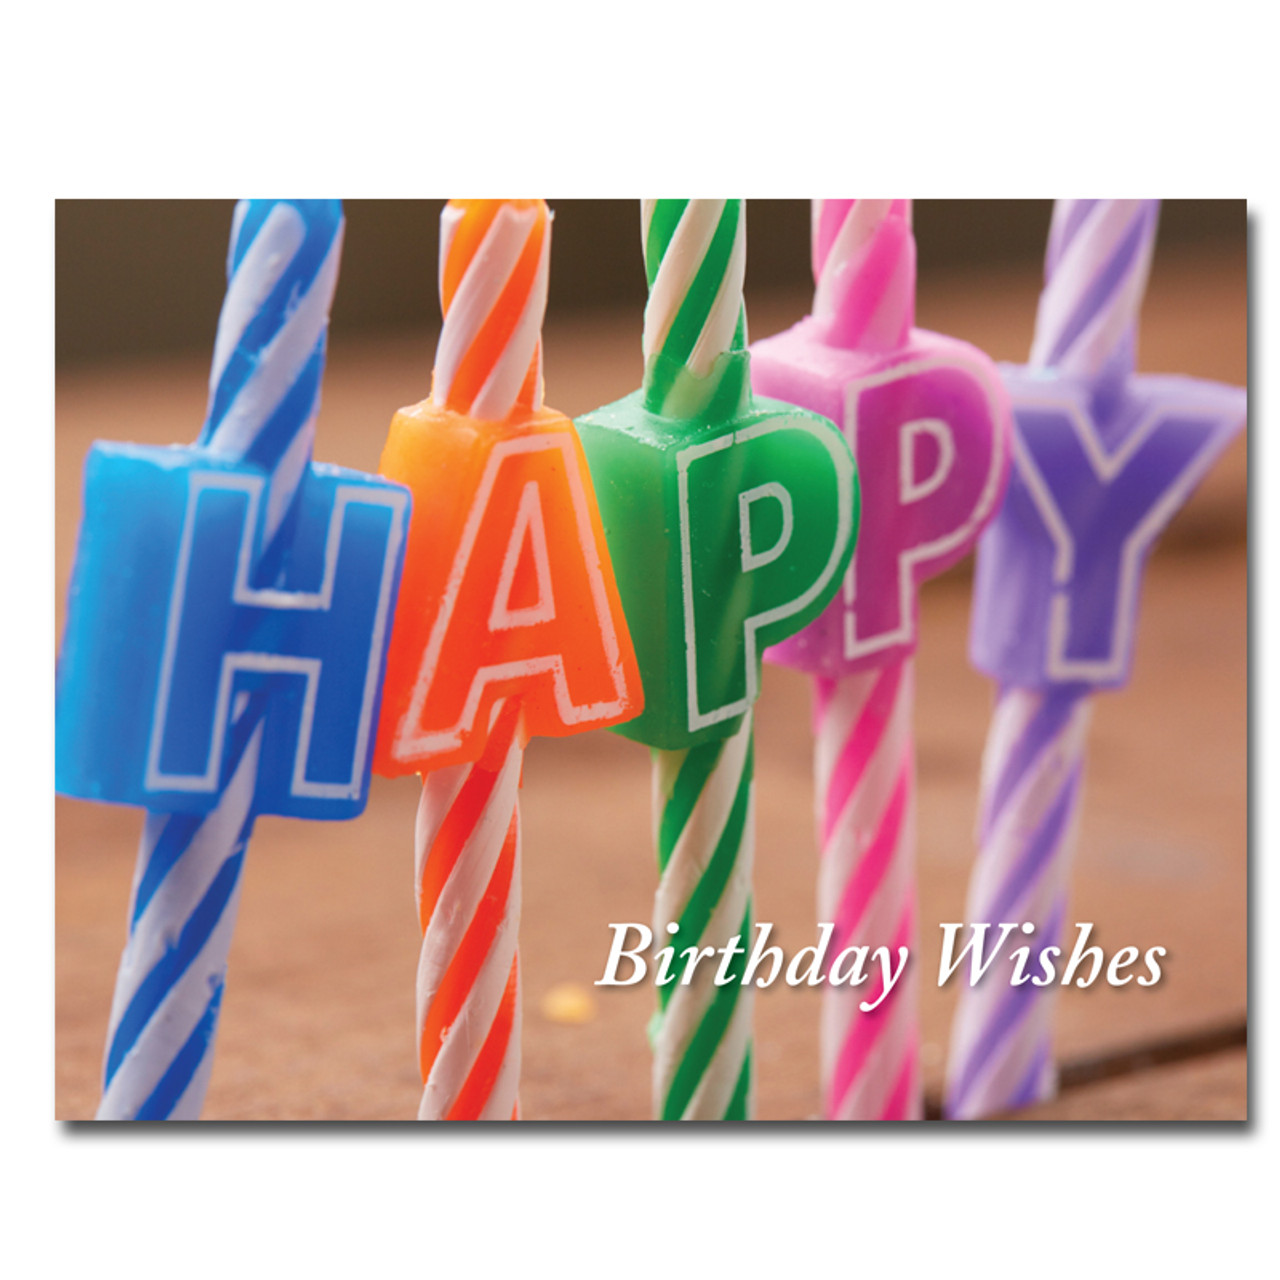 "Happy Letters Birthday Postcard has close up of birthday candles and the words ""Birthday Wishes"""